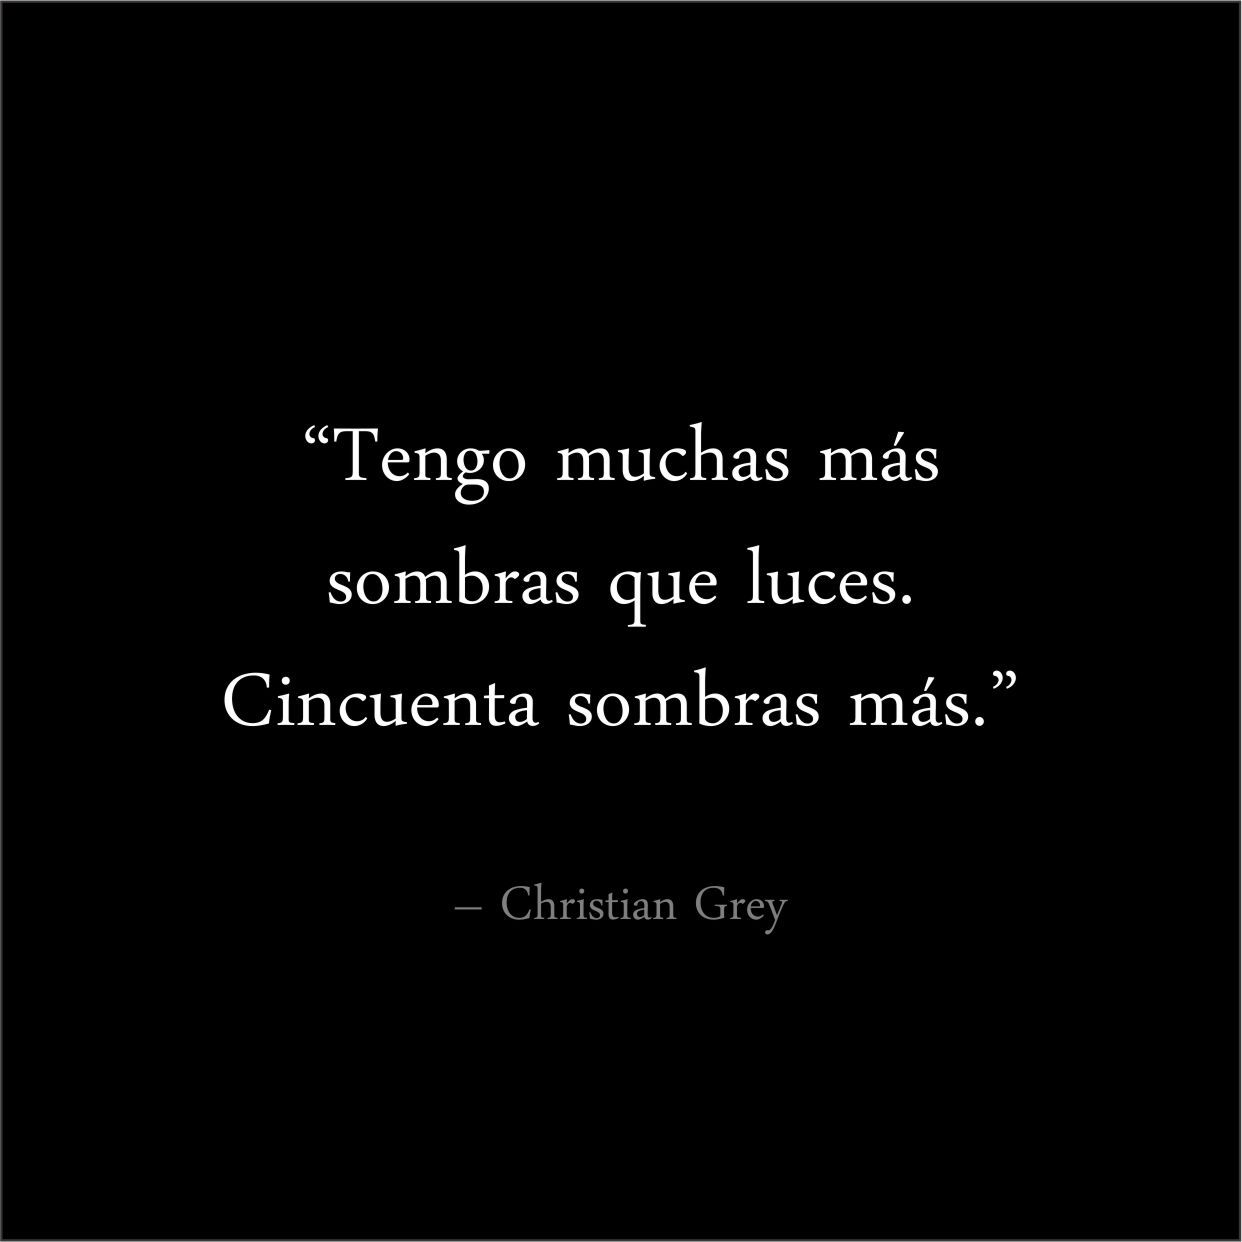 Quotes From 50 Shades Of Grey 50 Sombras De Grey  Fifty Shades Of Grey  50 Sombras De Grey